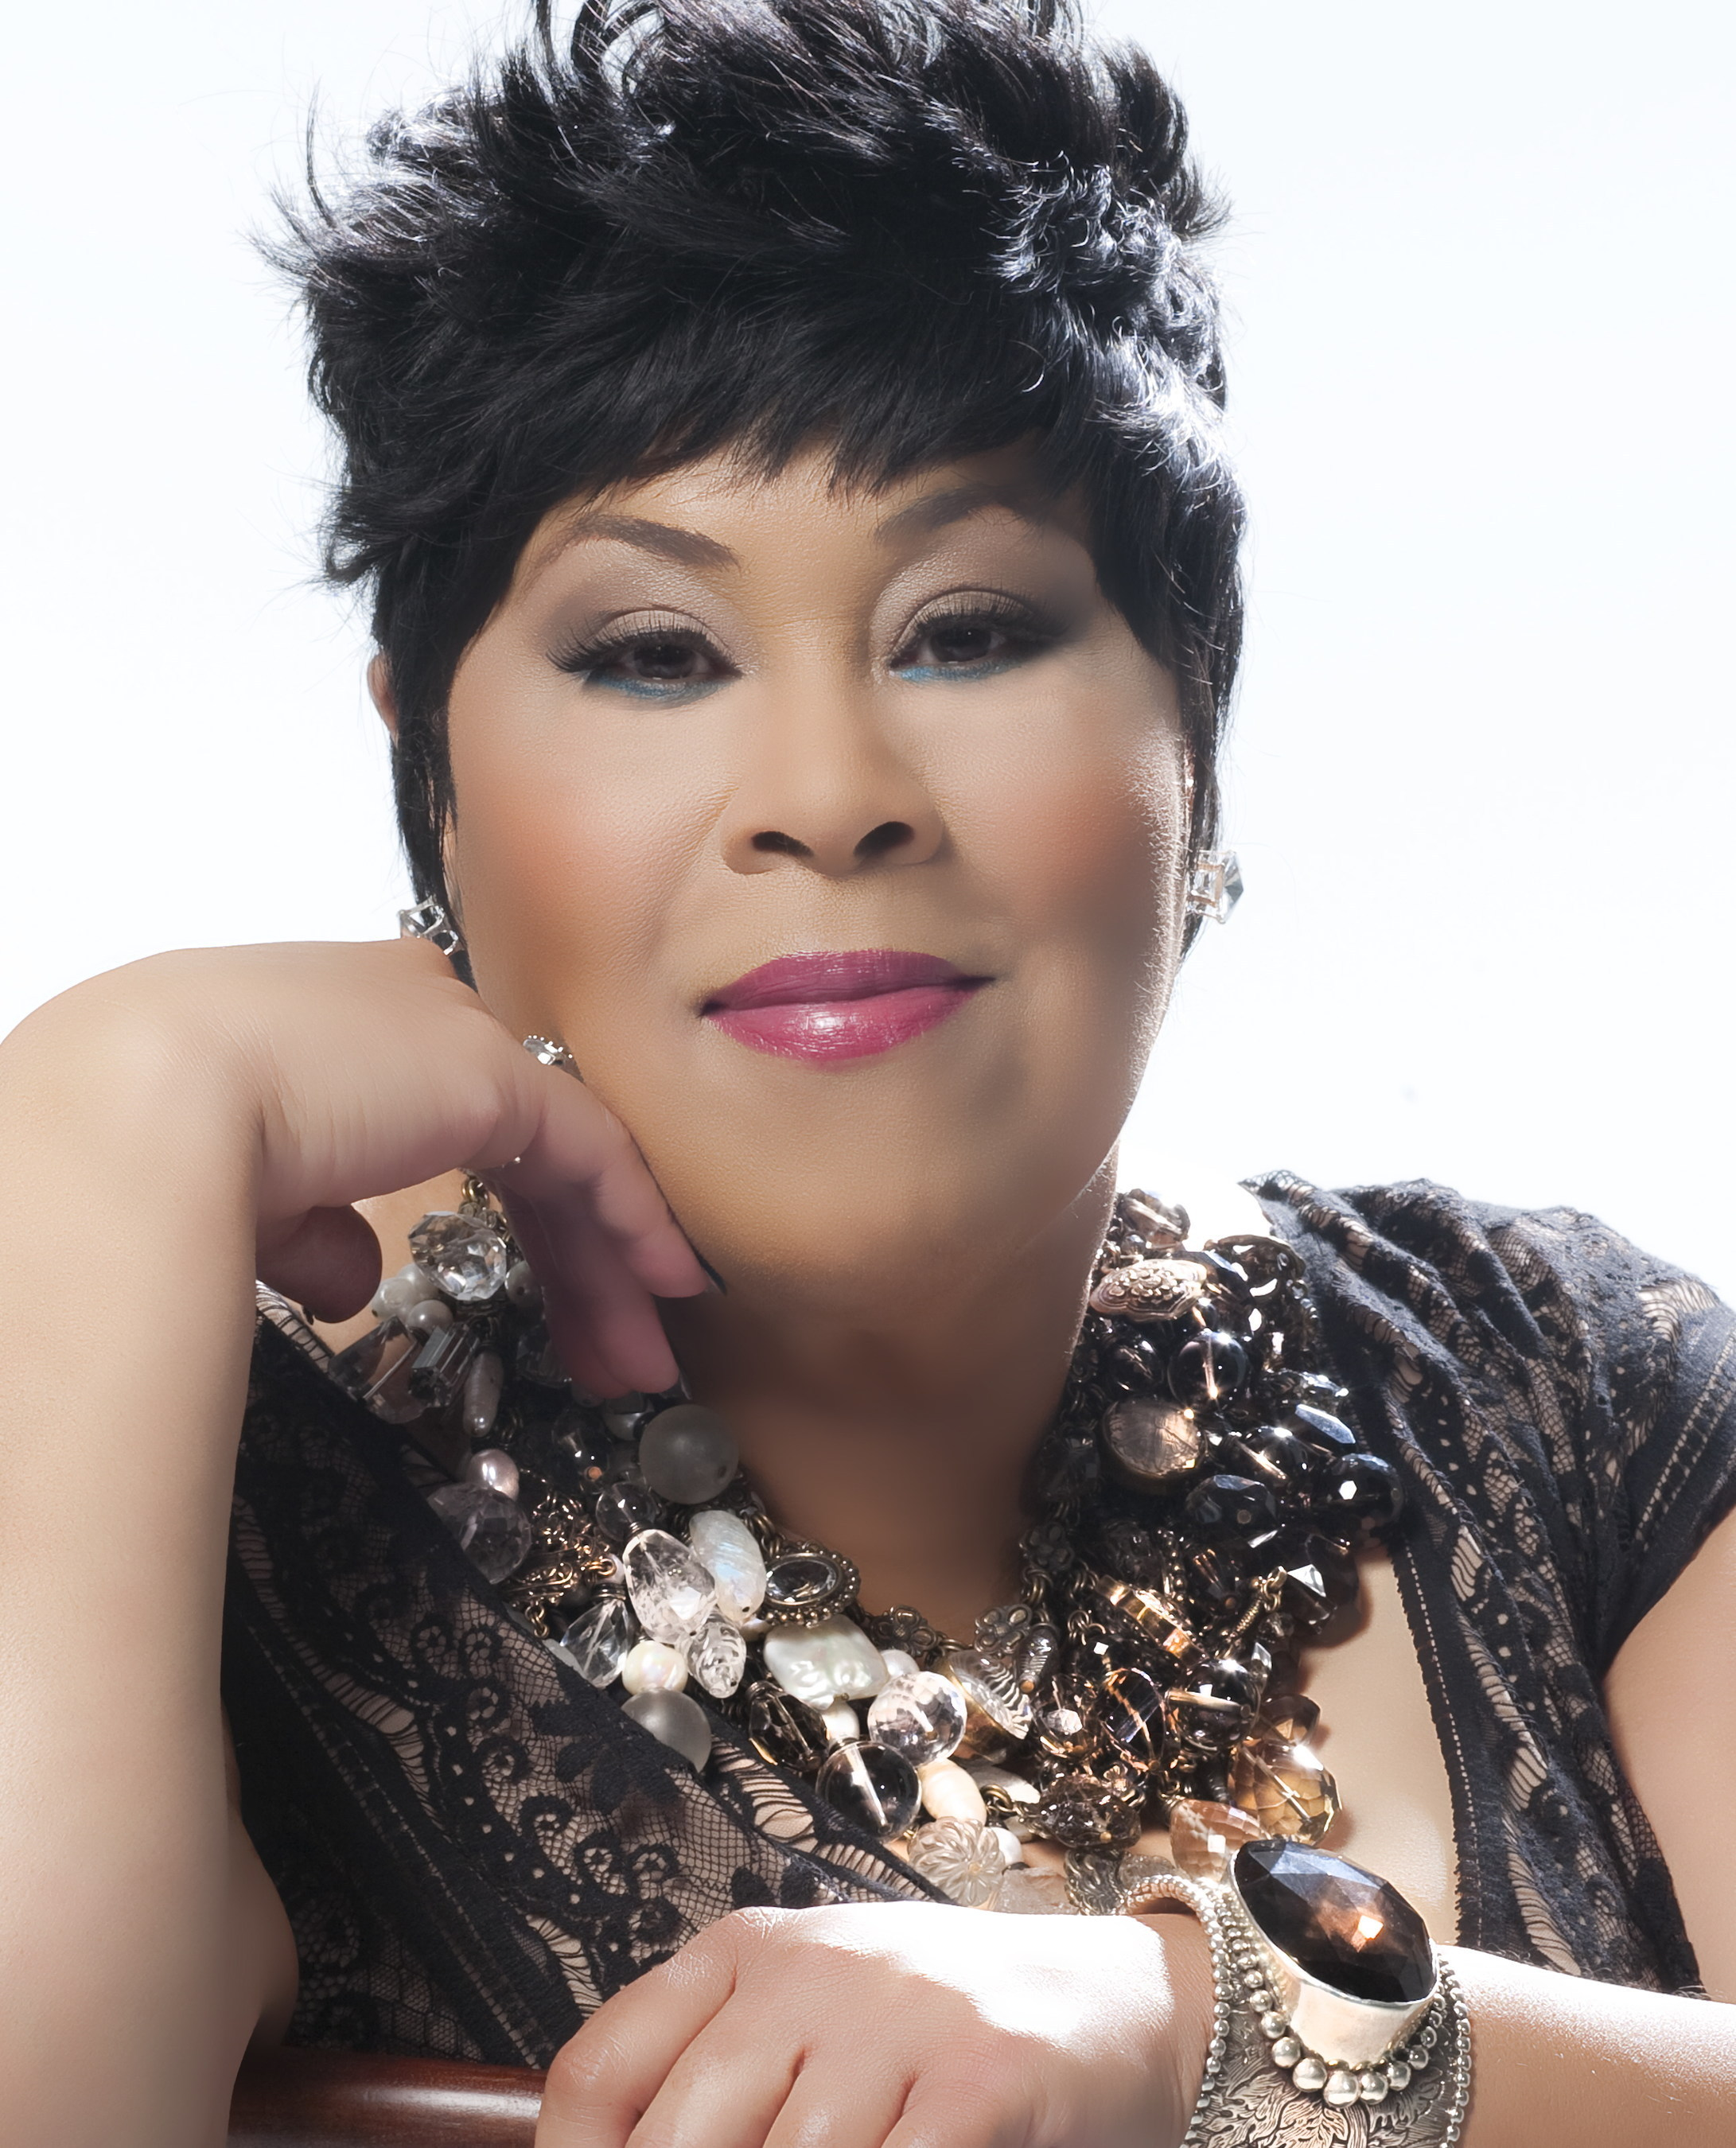 Two-time Grammy Nominee Martha Wash Covers Aerosmith Classic 'Dream On'